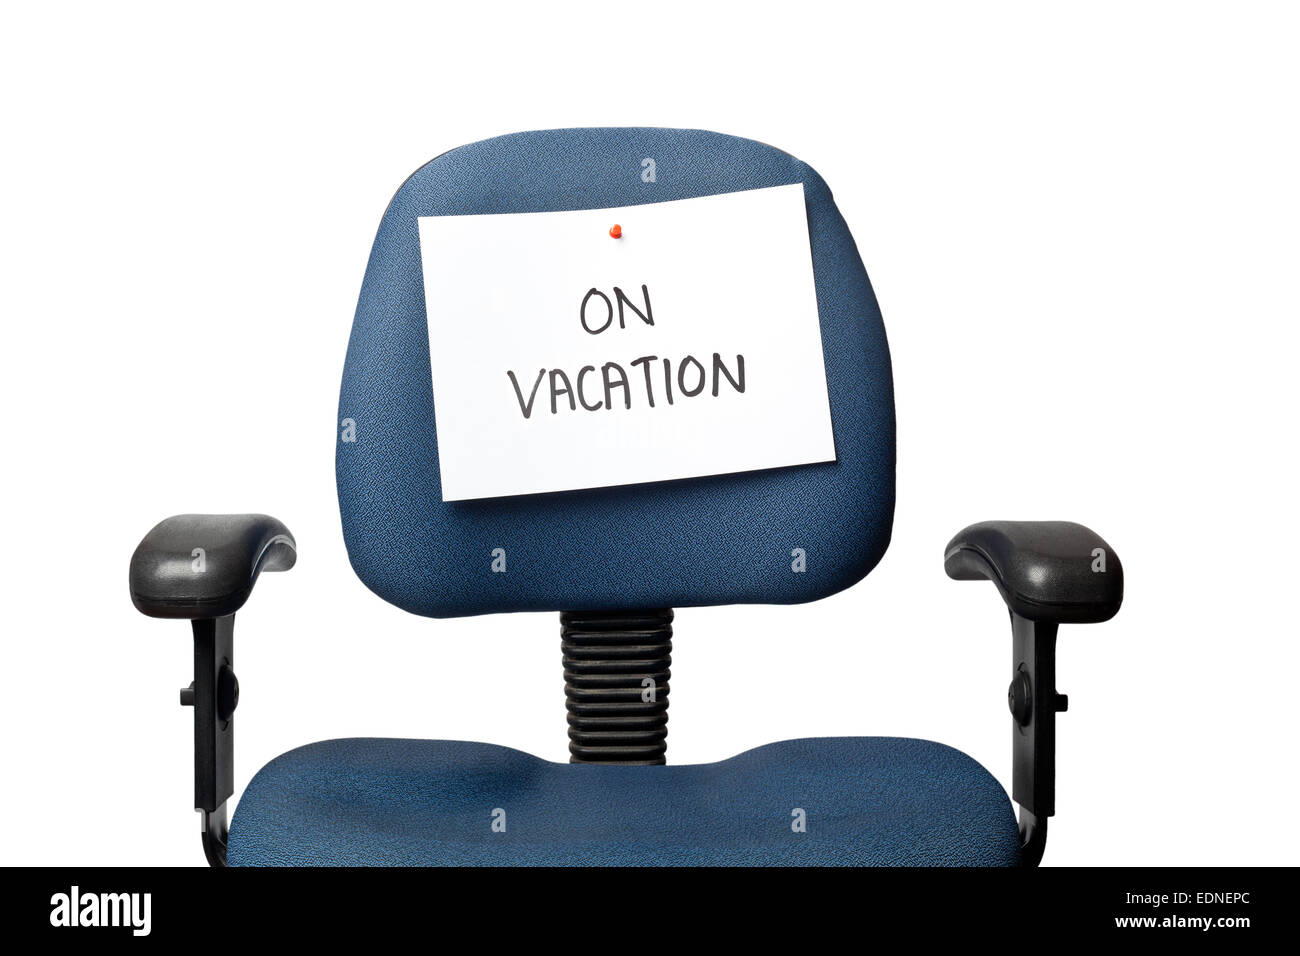 Office Chair With A ON VACATION Sign Isolated On White Background